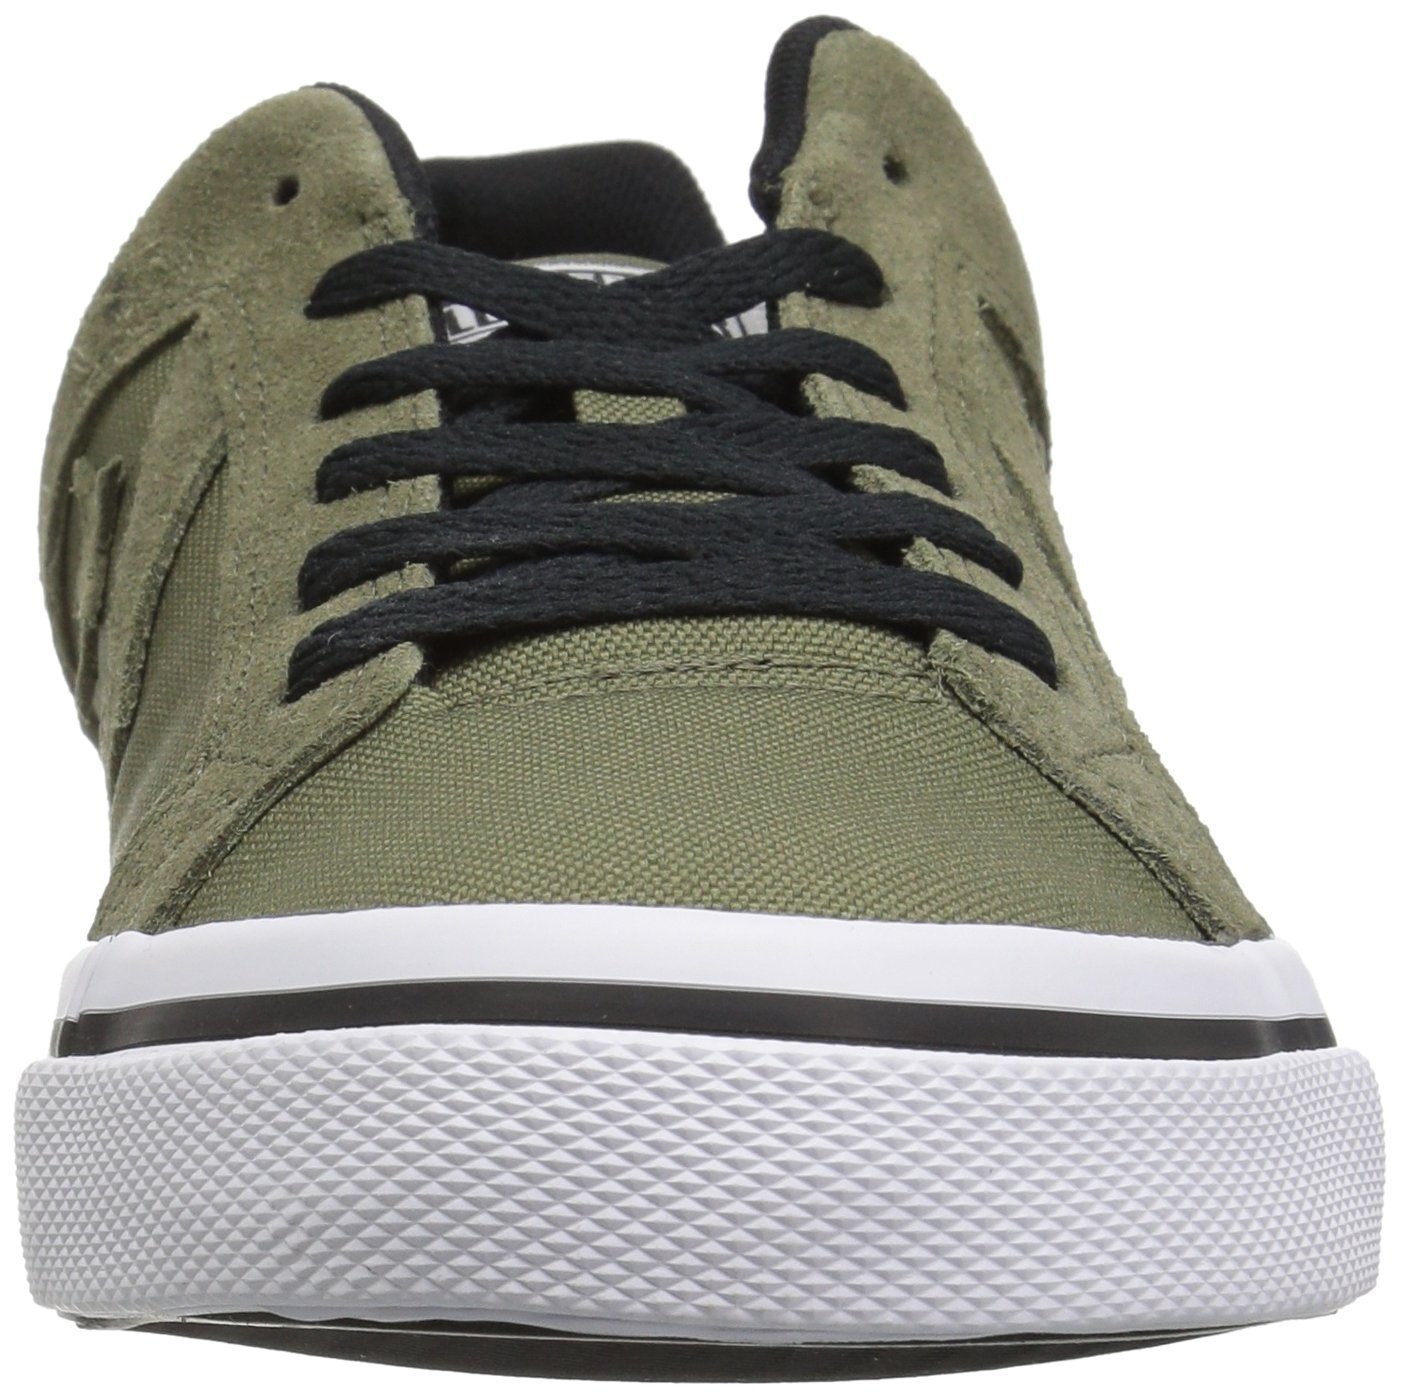 Converse Top El Distrito Canvas Low Top Converse Sneaker B07CQB8M2X 13 M US|Field Surplus/White/Black dbd536